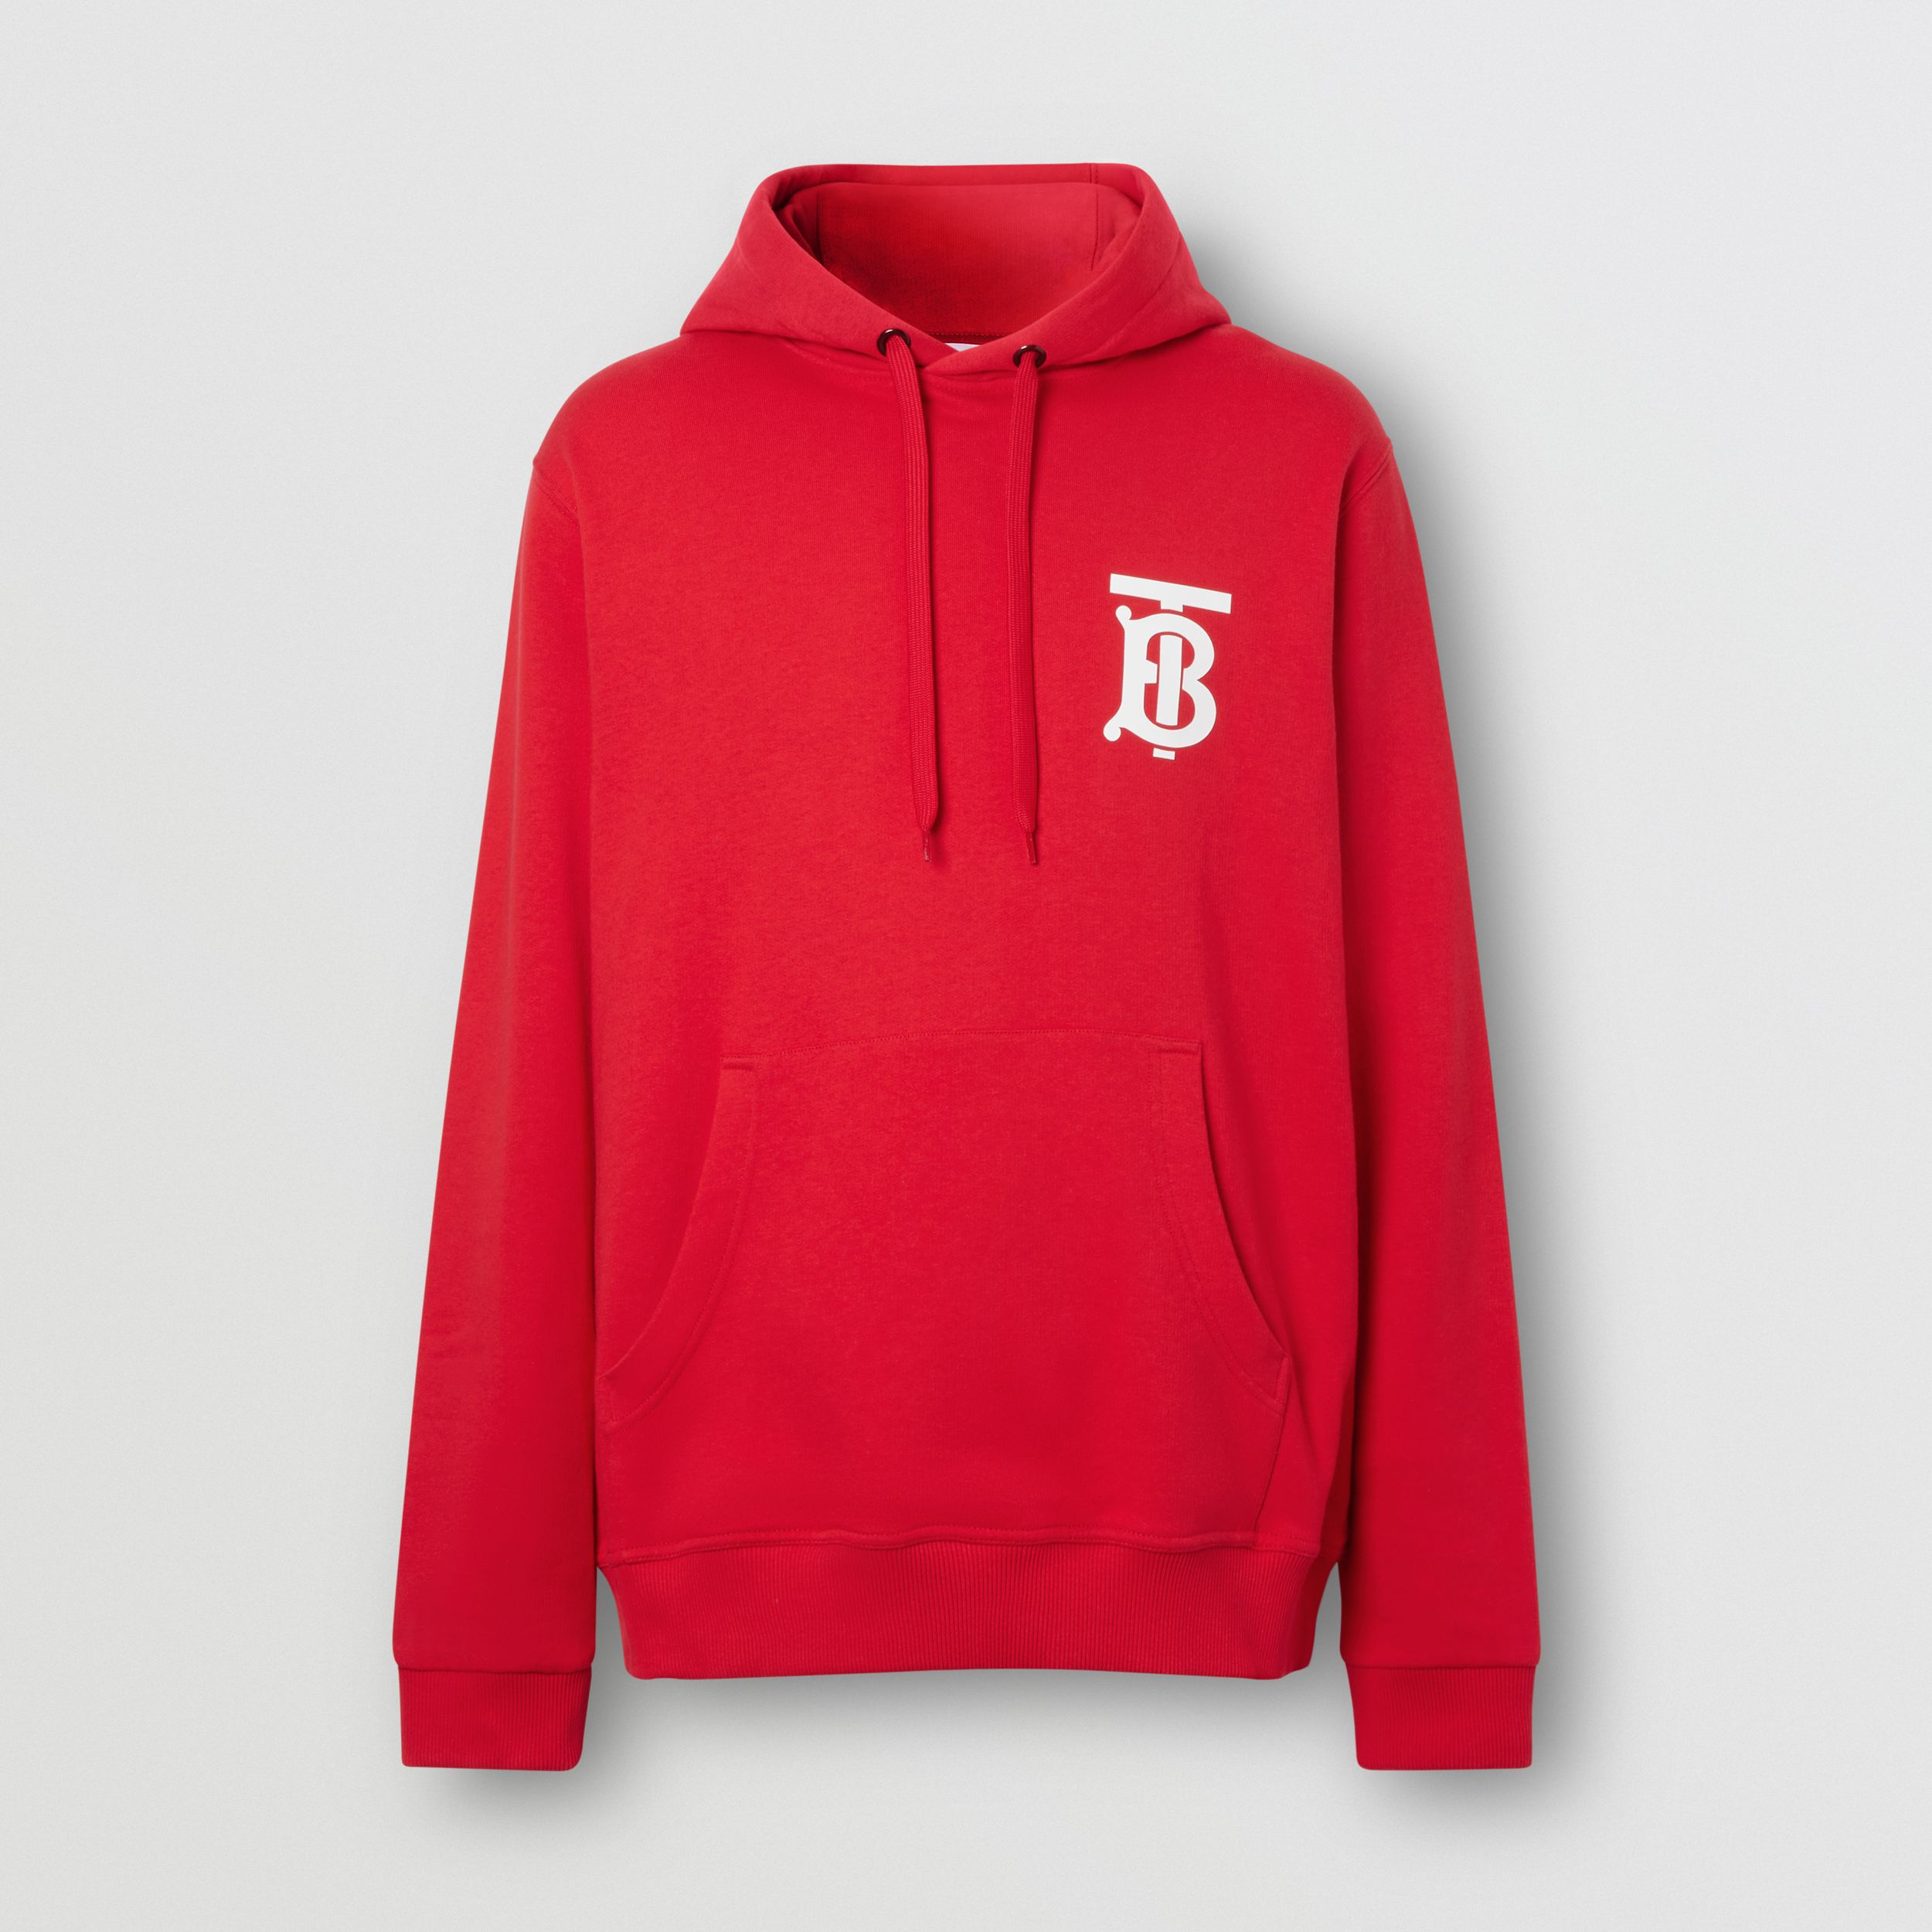 Monogram Motif Cotton Hoodie in Bright Red - Men | Burberry - 4